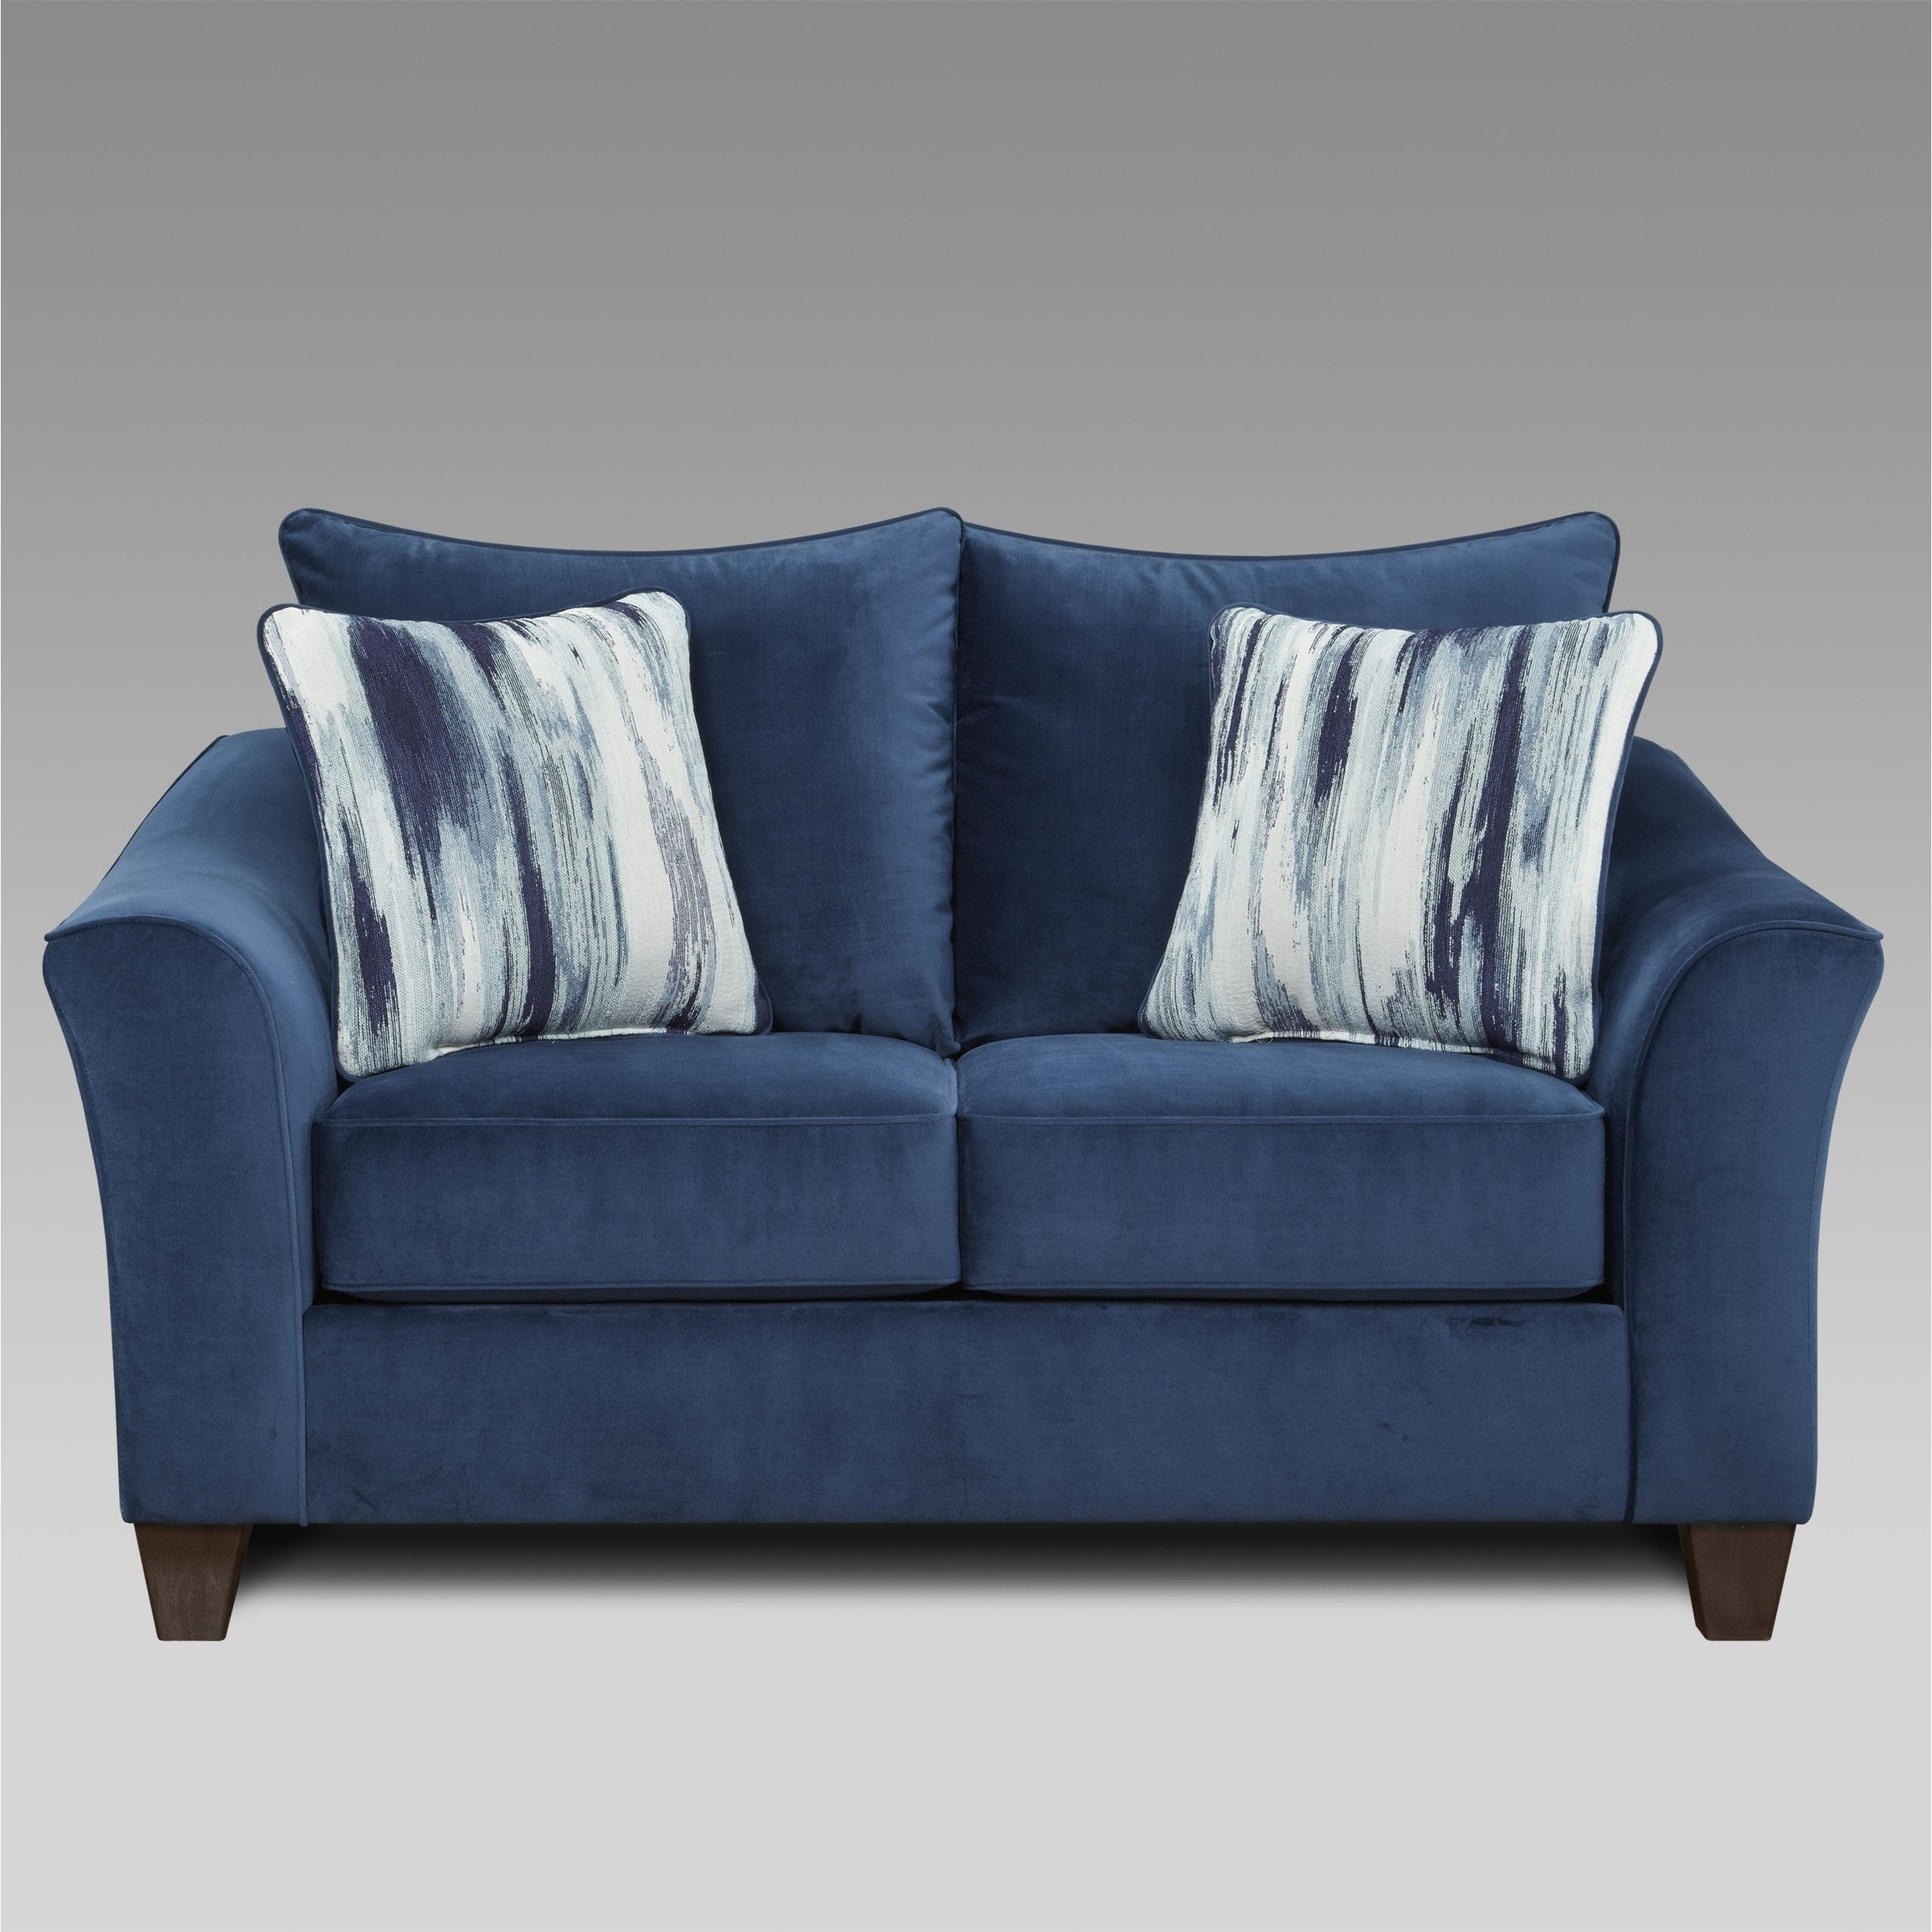 Picture of: Camero Fabric Pillowback Loveseat In Navy Blue Overstock 30689278